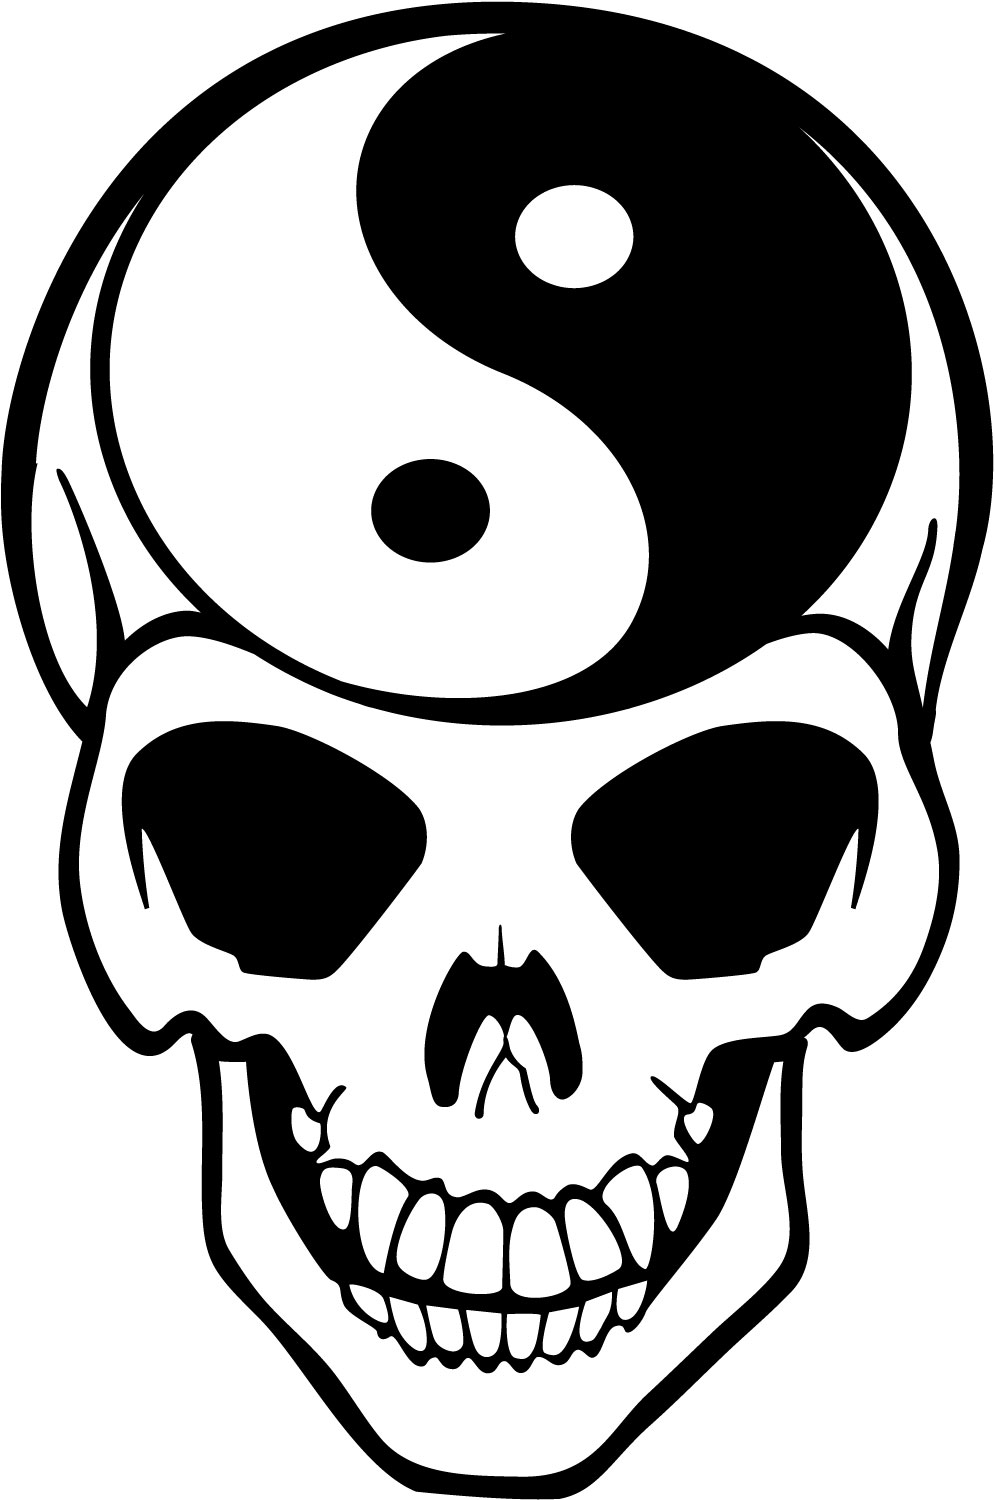 Skull Vector Art - ClipArt Best